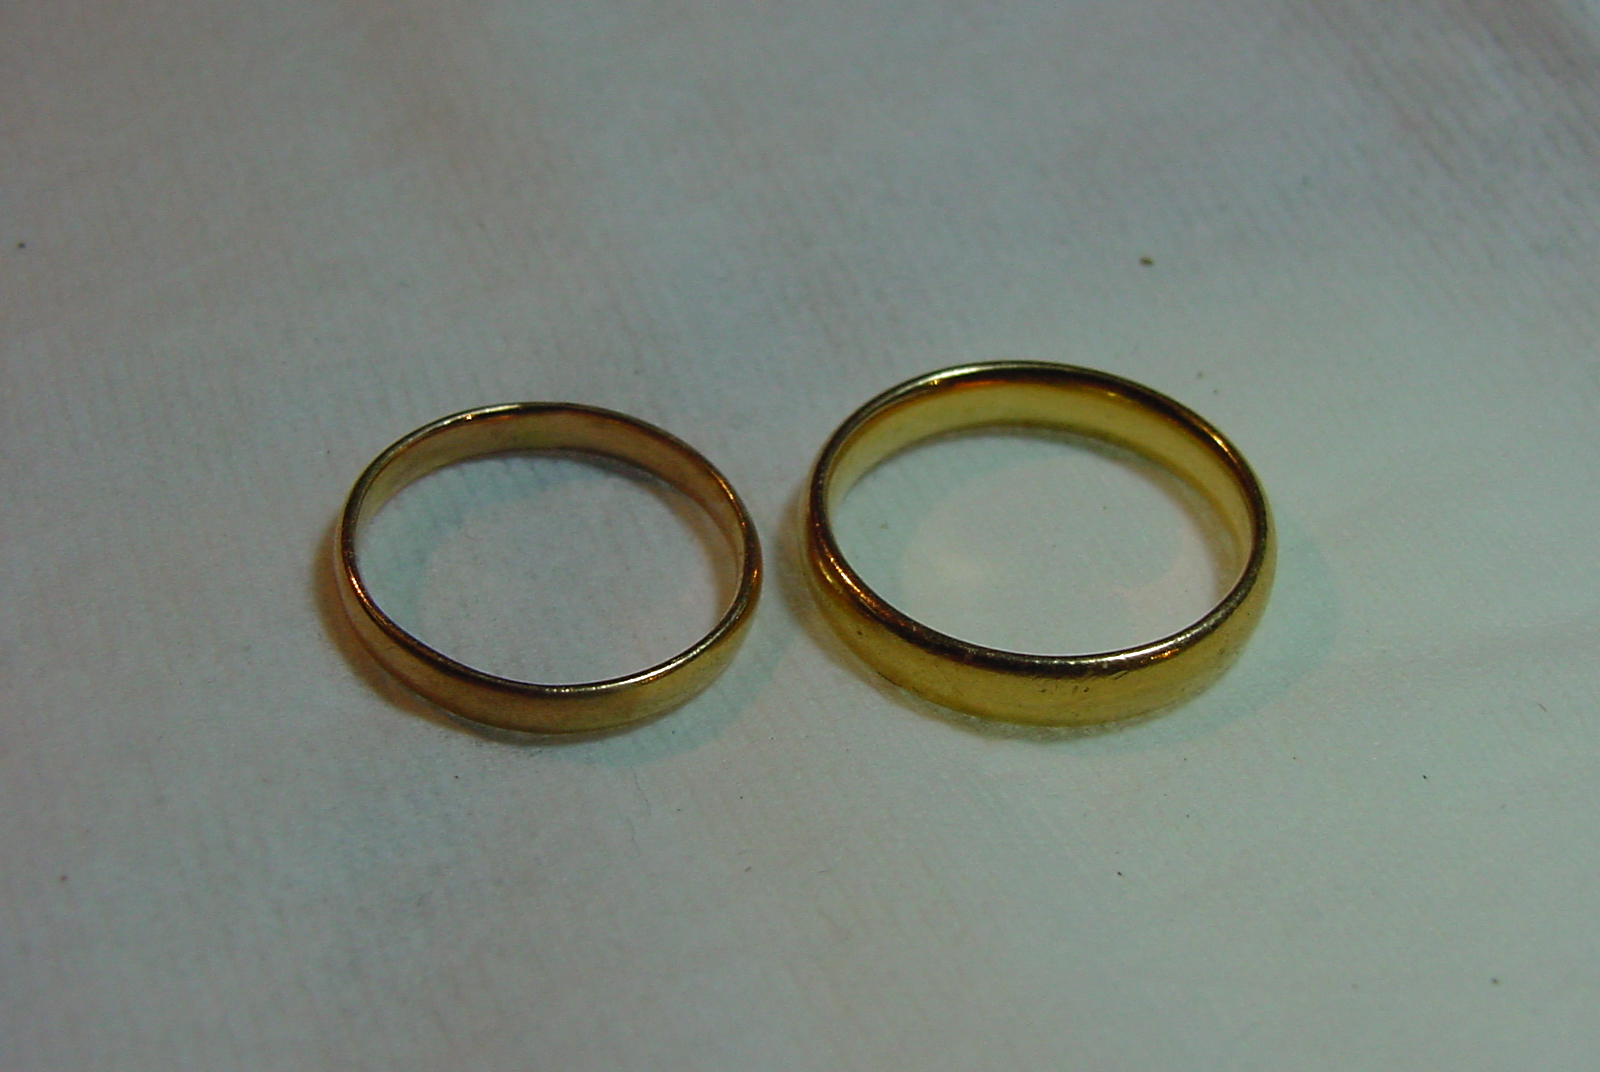 Charles Hyde Aston 22k wedding rings Birmingham  England